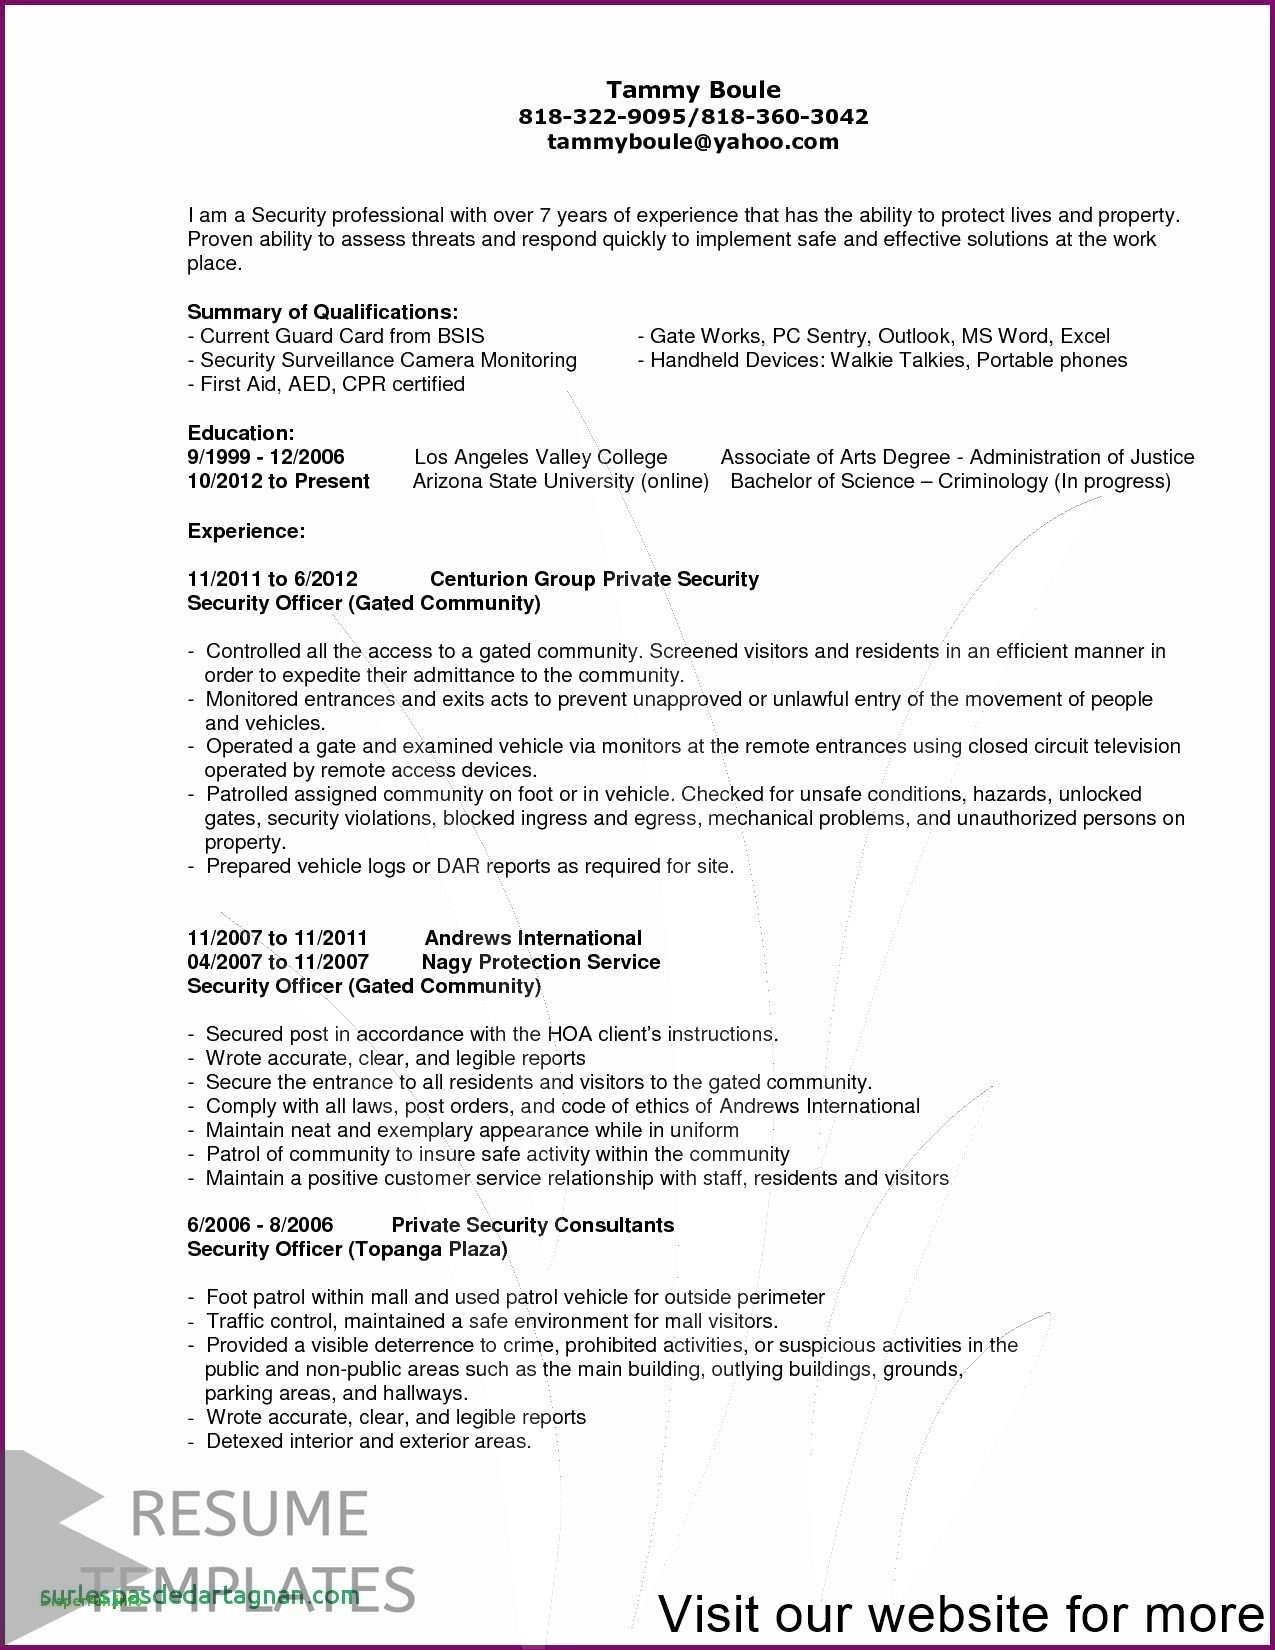 resume template etsy Professional in 2020 Resume